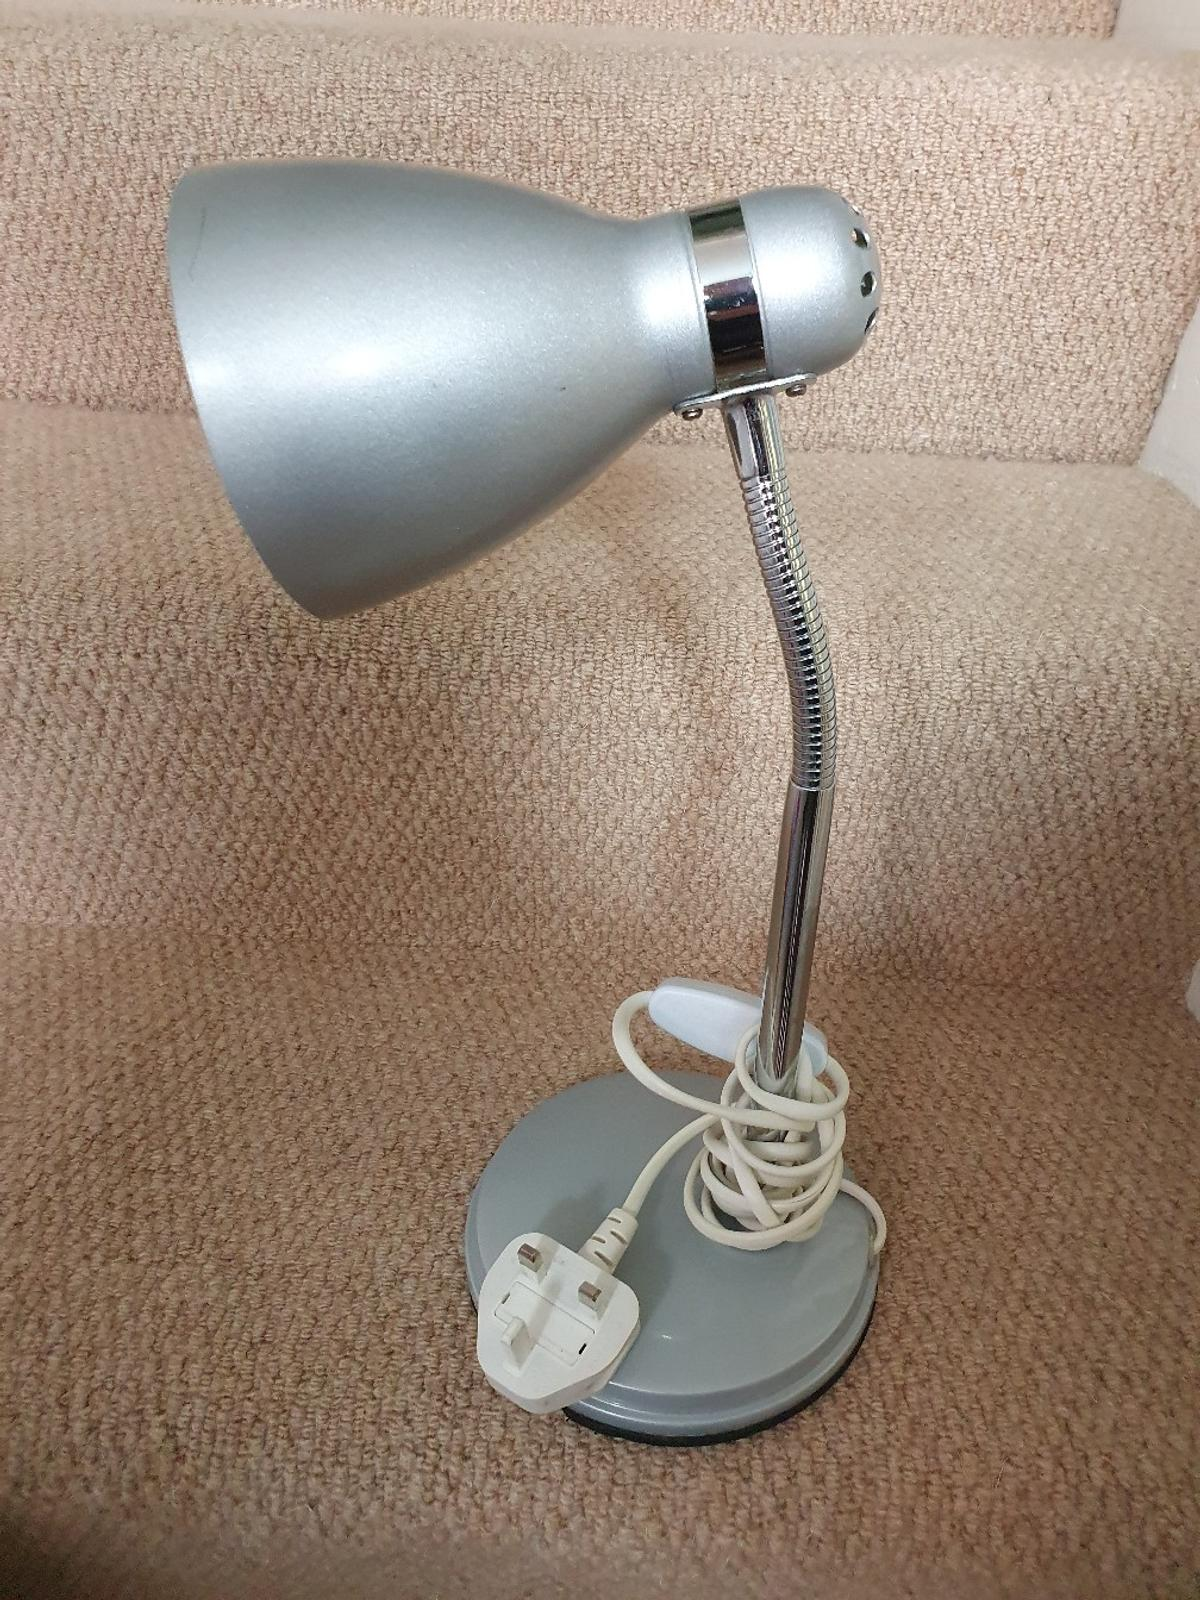 Silver desk lamp in good working order.